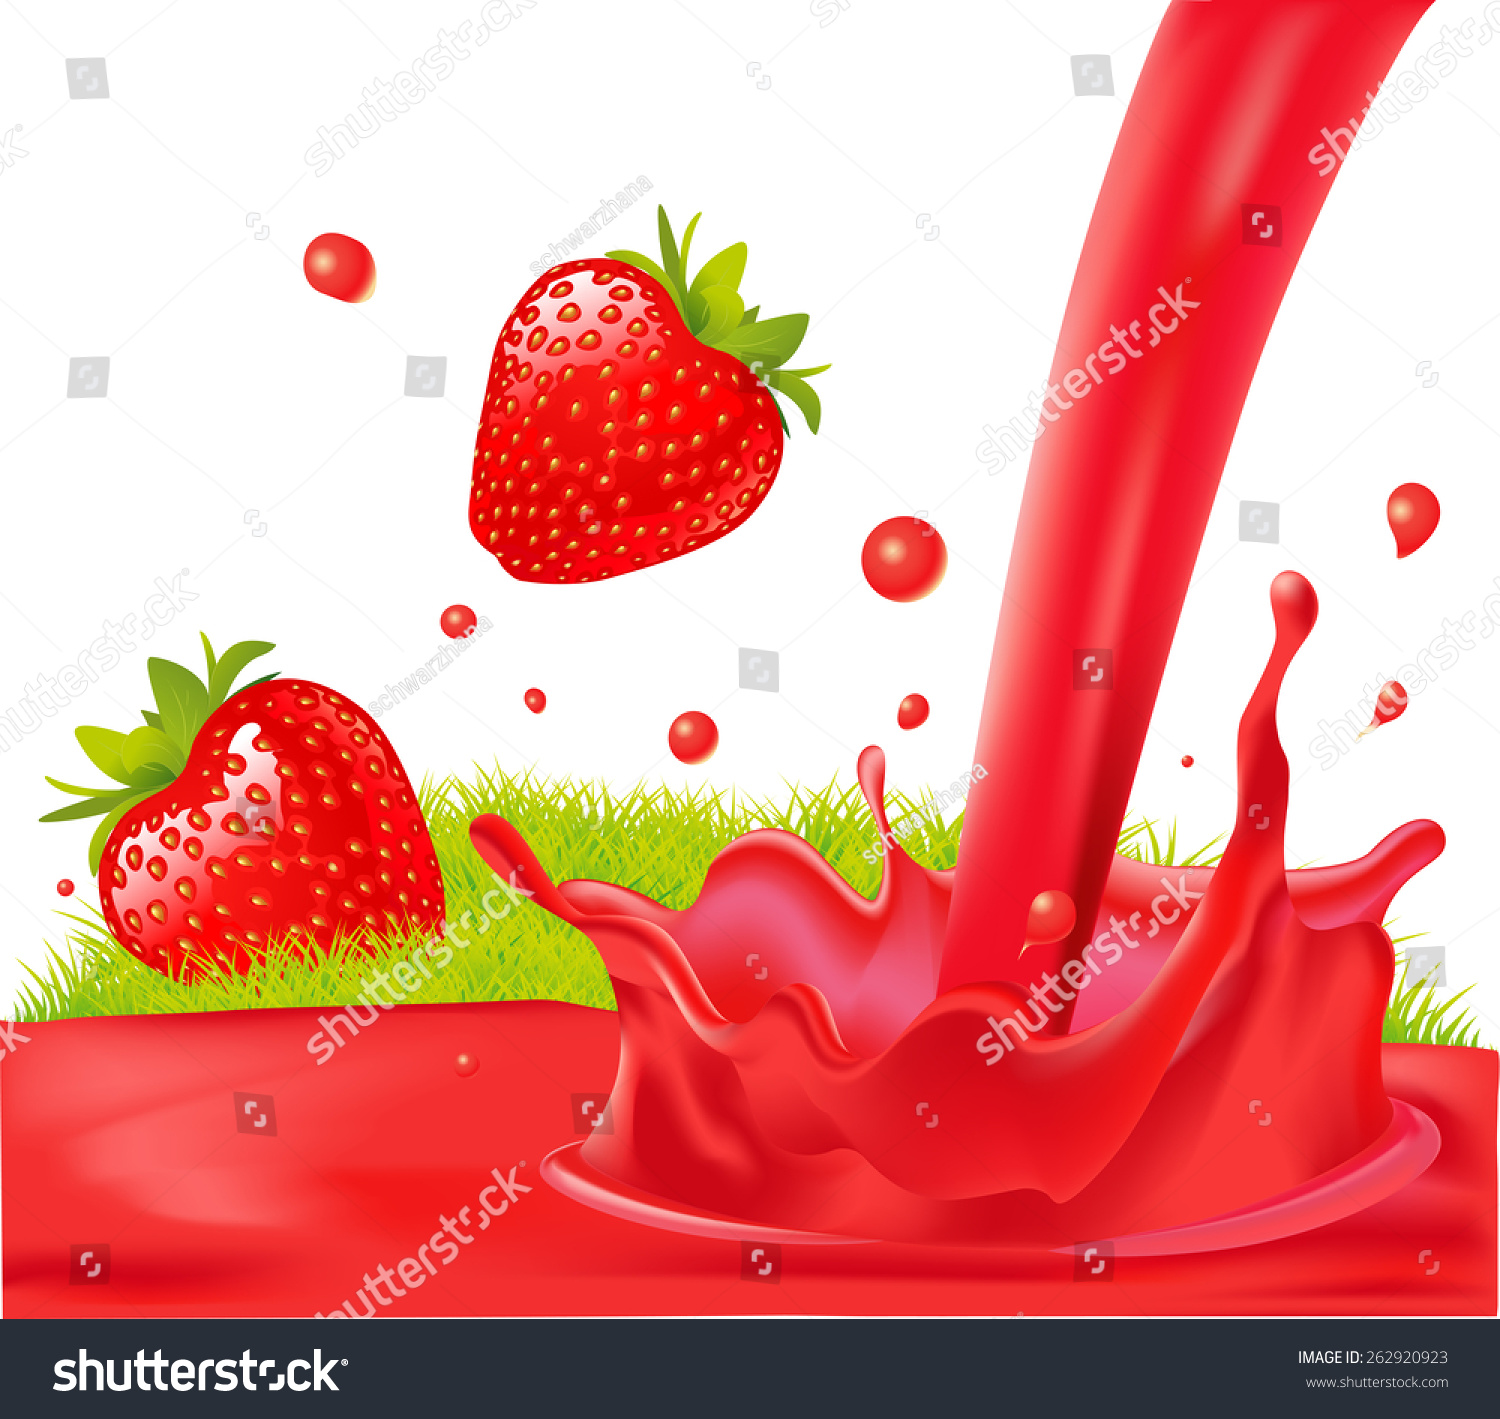 how to get juice out of strawberries